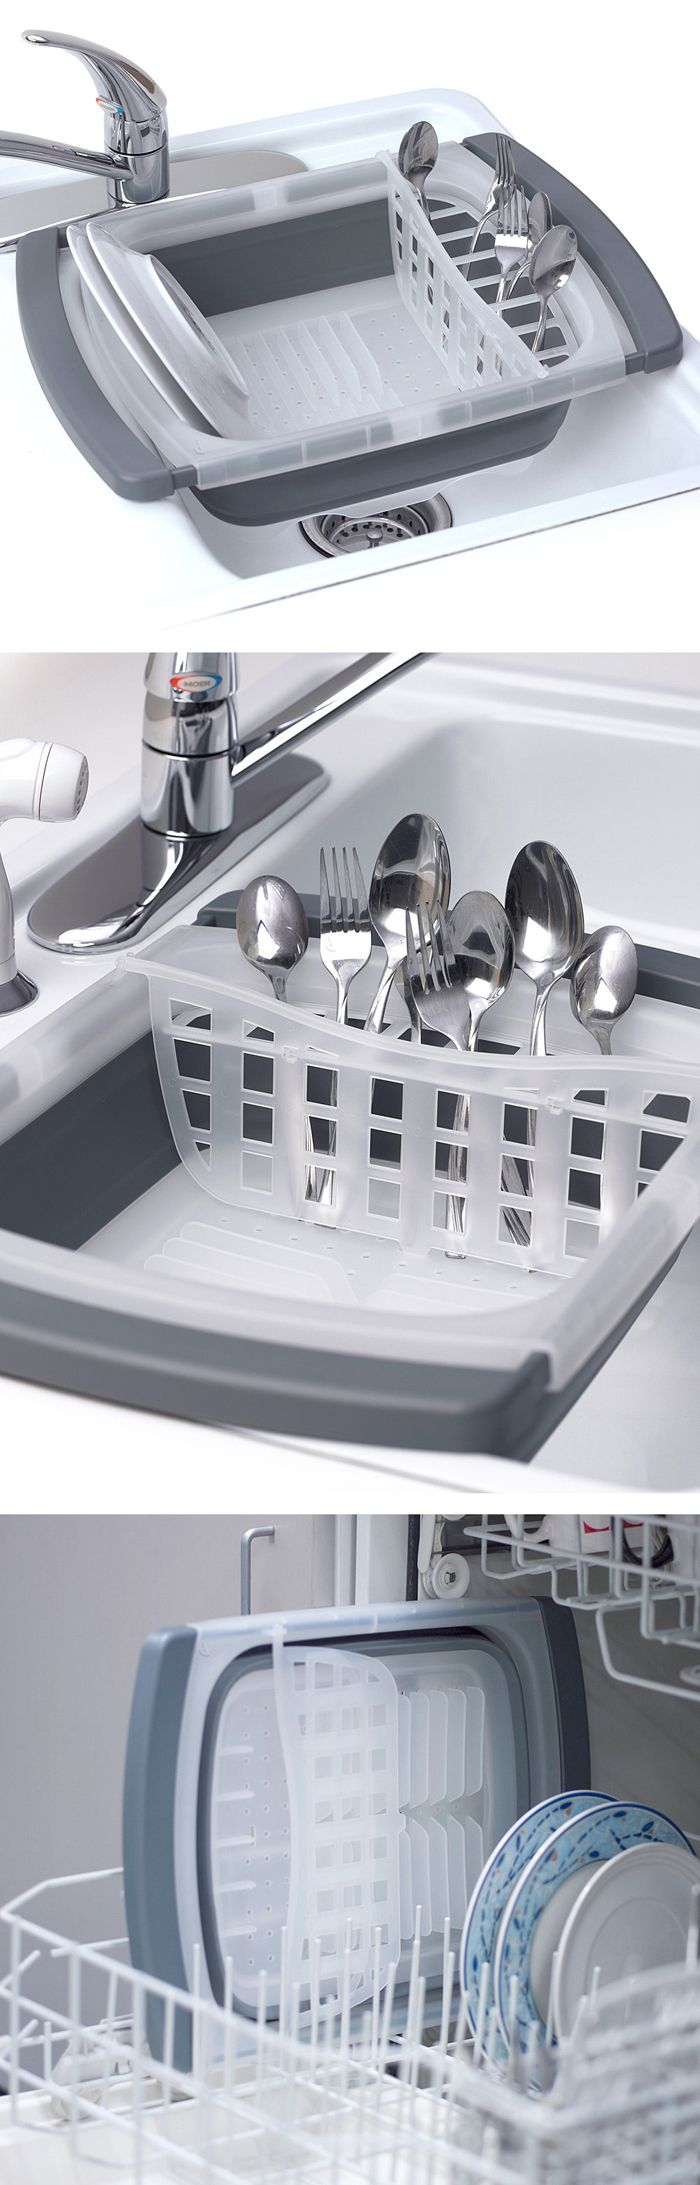 Kitchen Dish Drainer Rack 17 Best Images About Sink And Drainers On Pinterest Shelves